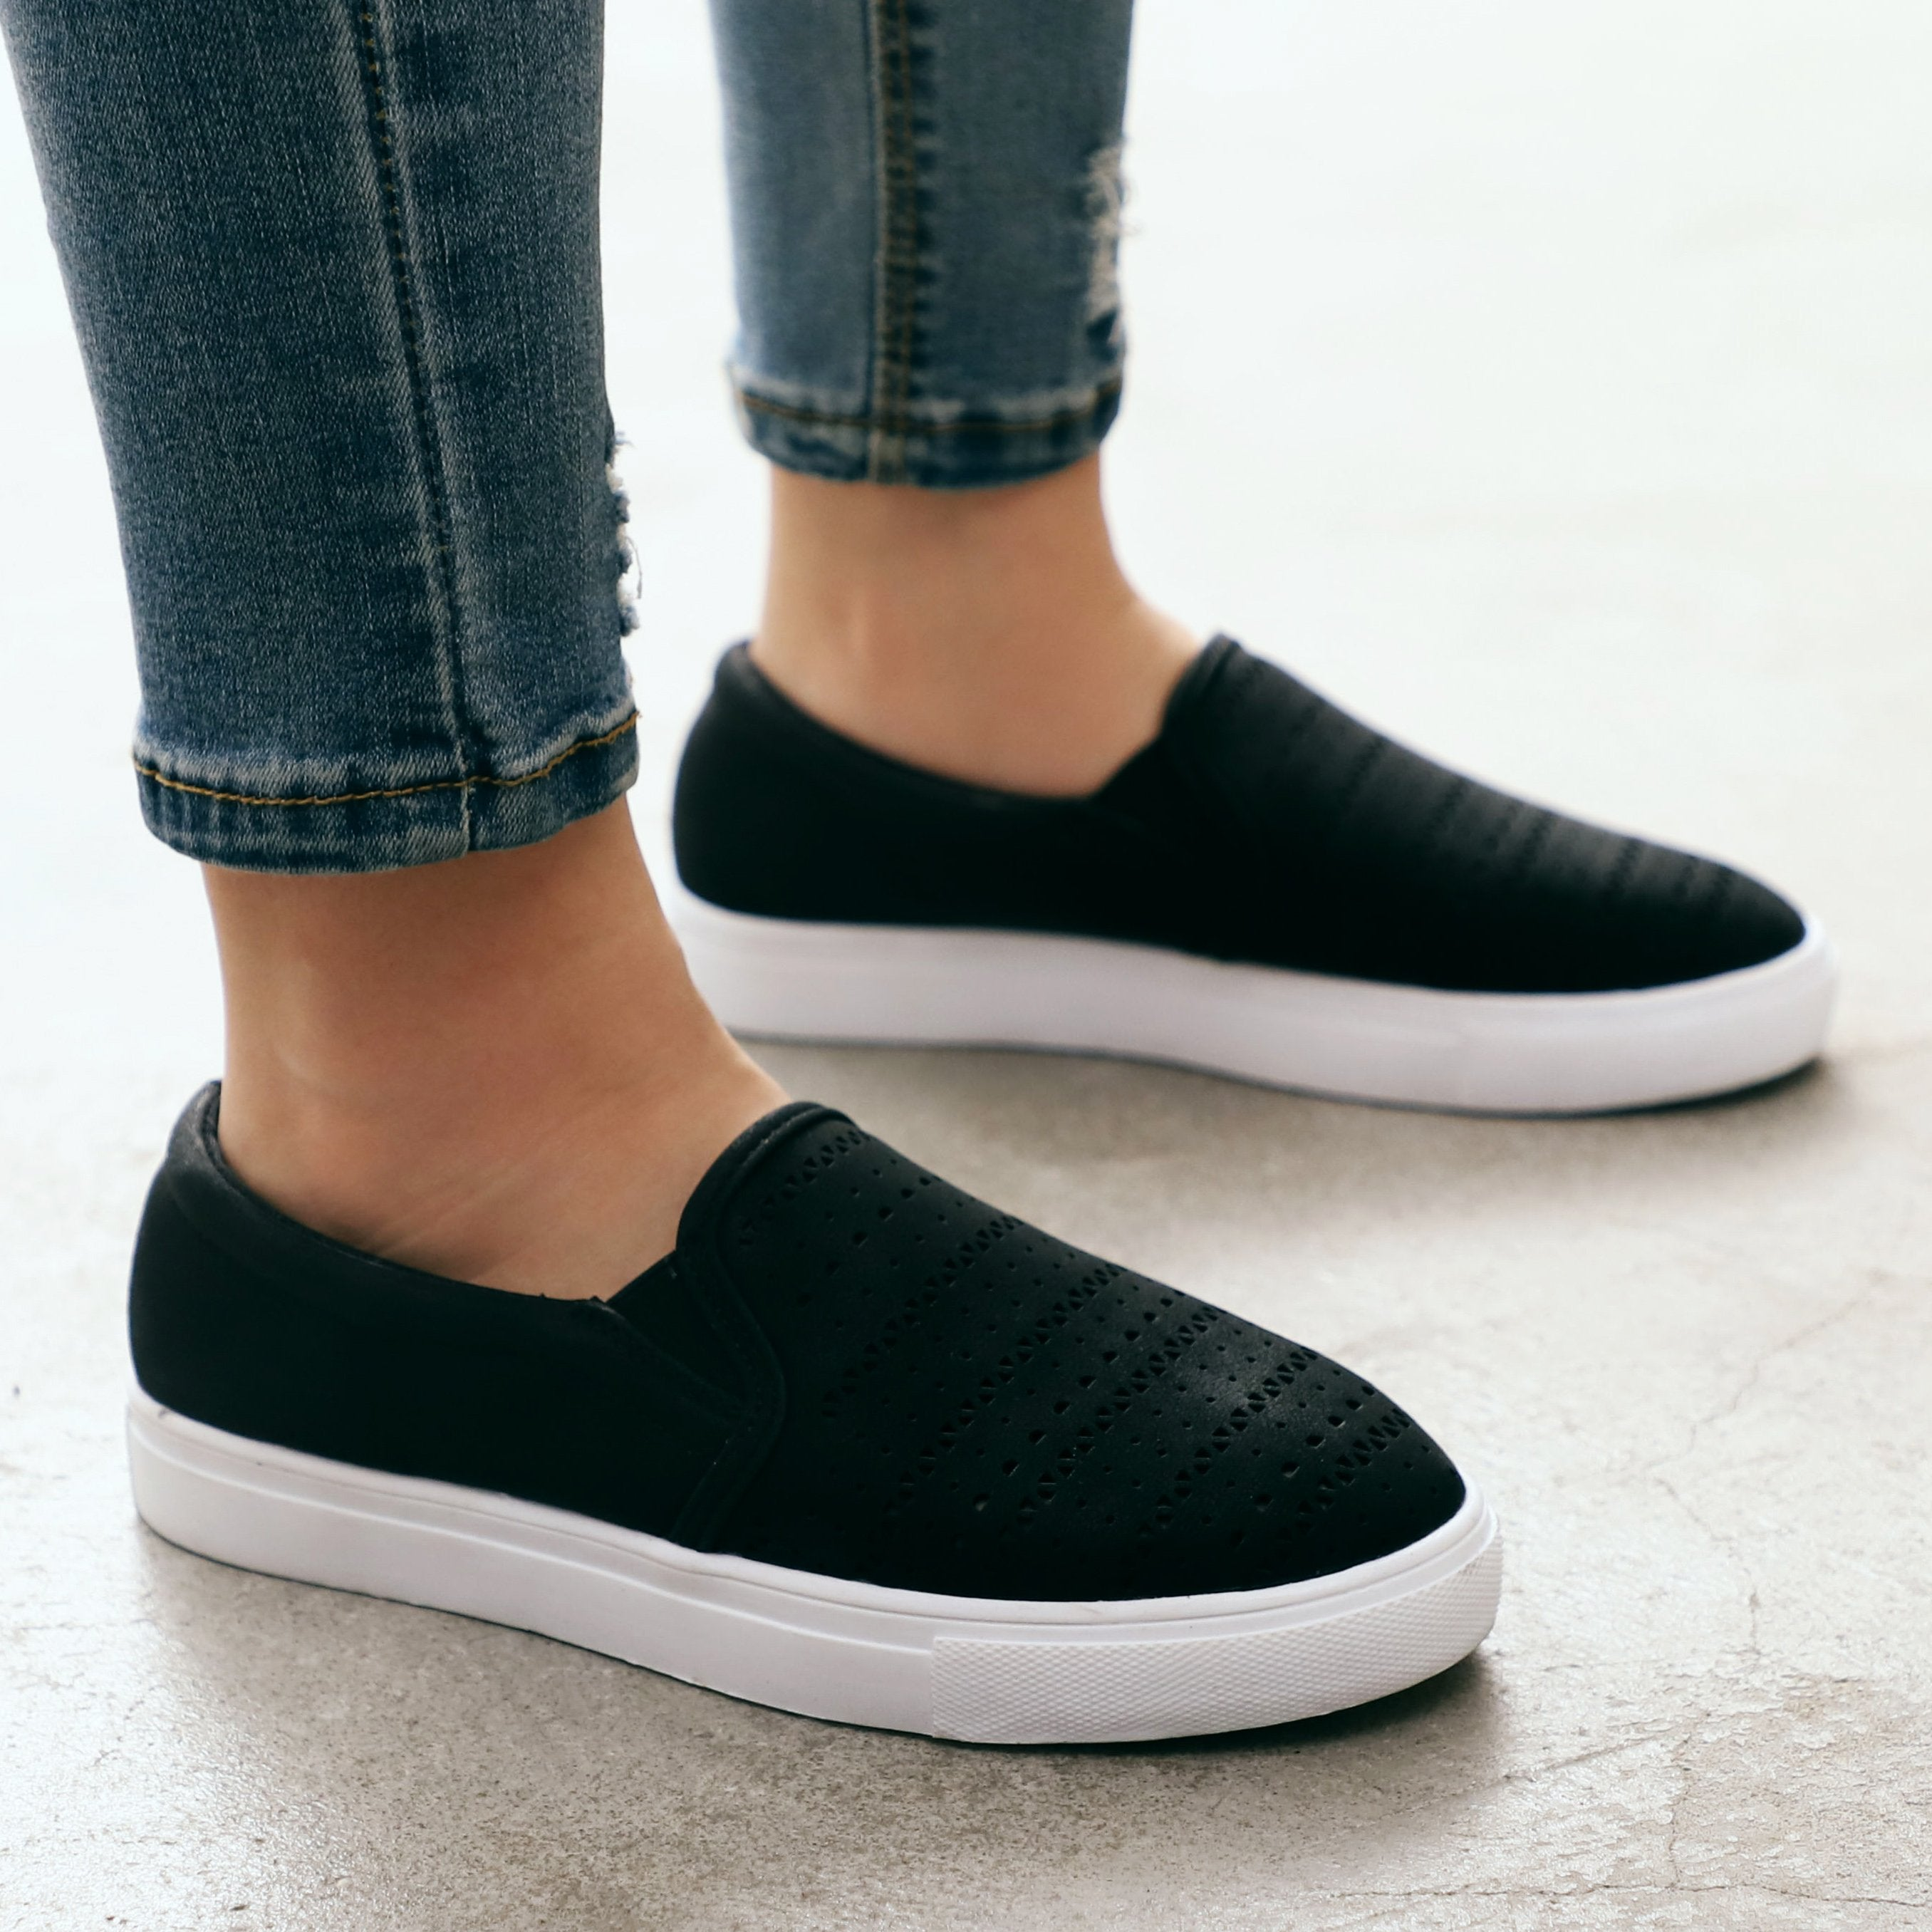 Women's Casual Hollow Out Canvas Shoes Plimsolls Slip On